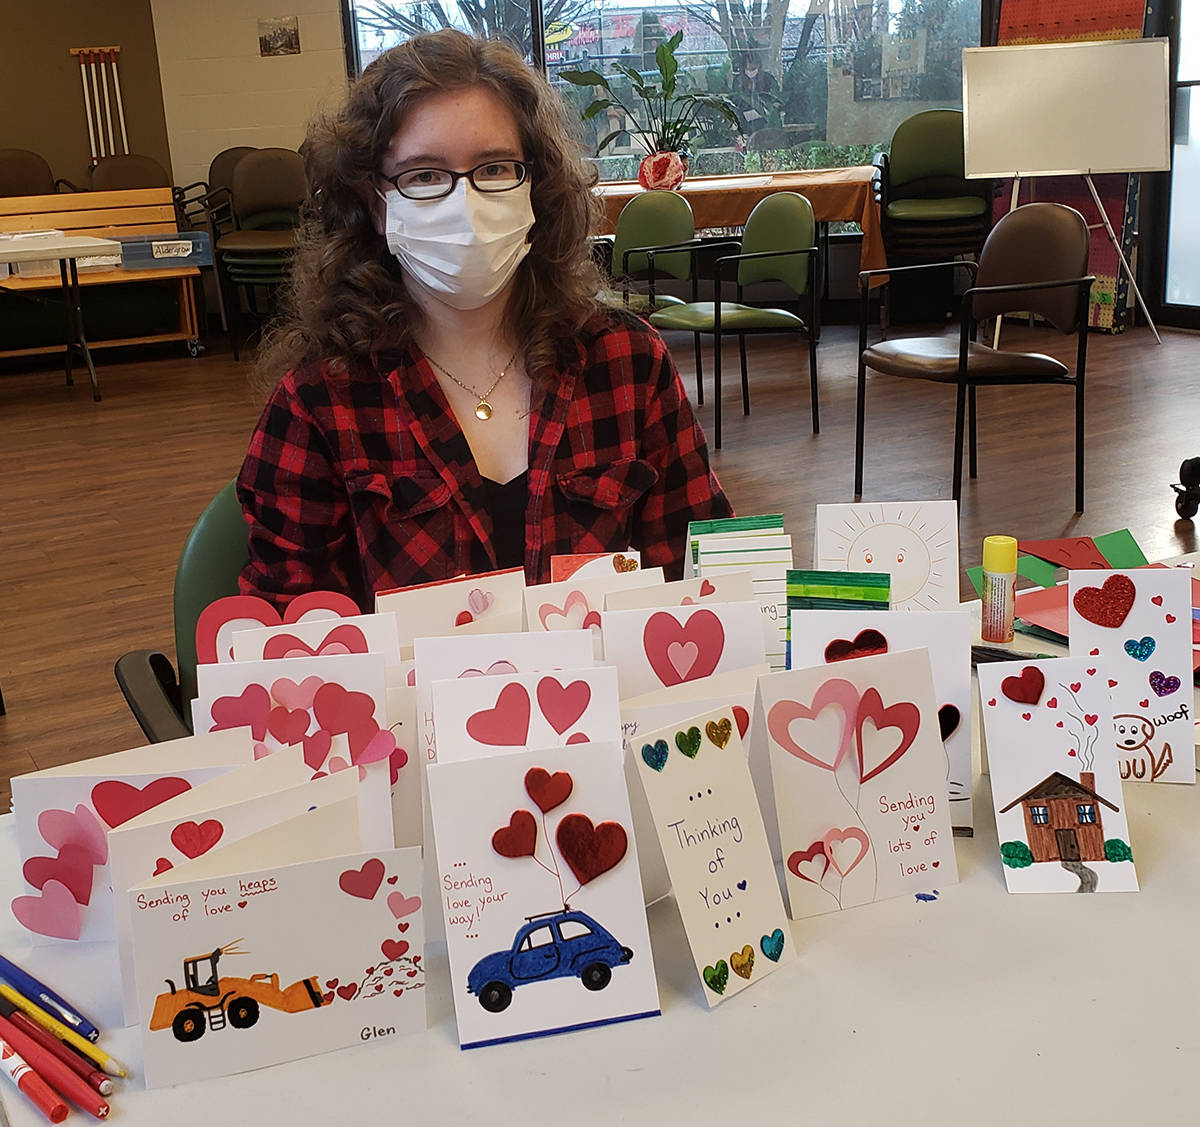 Staffer Melissa shows some of her card creations at the Langley Adult Day Program, which is operated by the Langley Senior Resources Society (Special to Langley Advance Times)